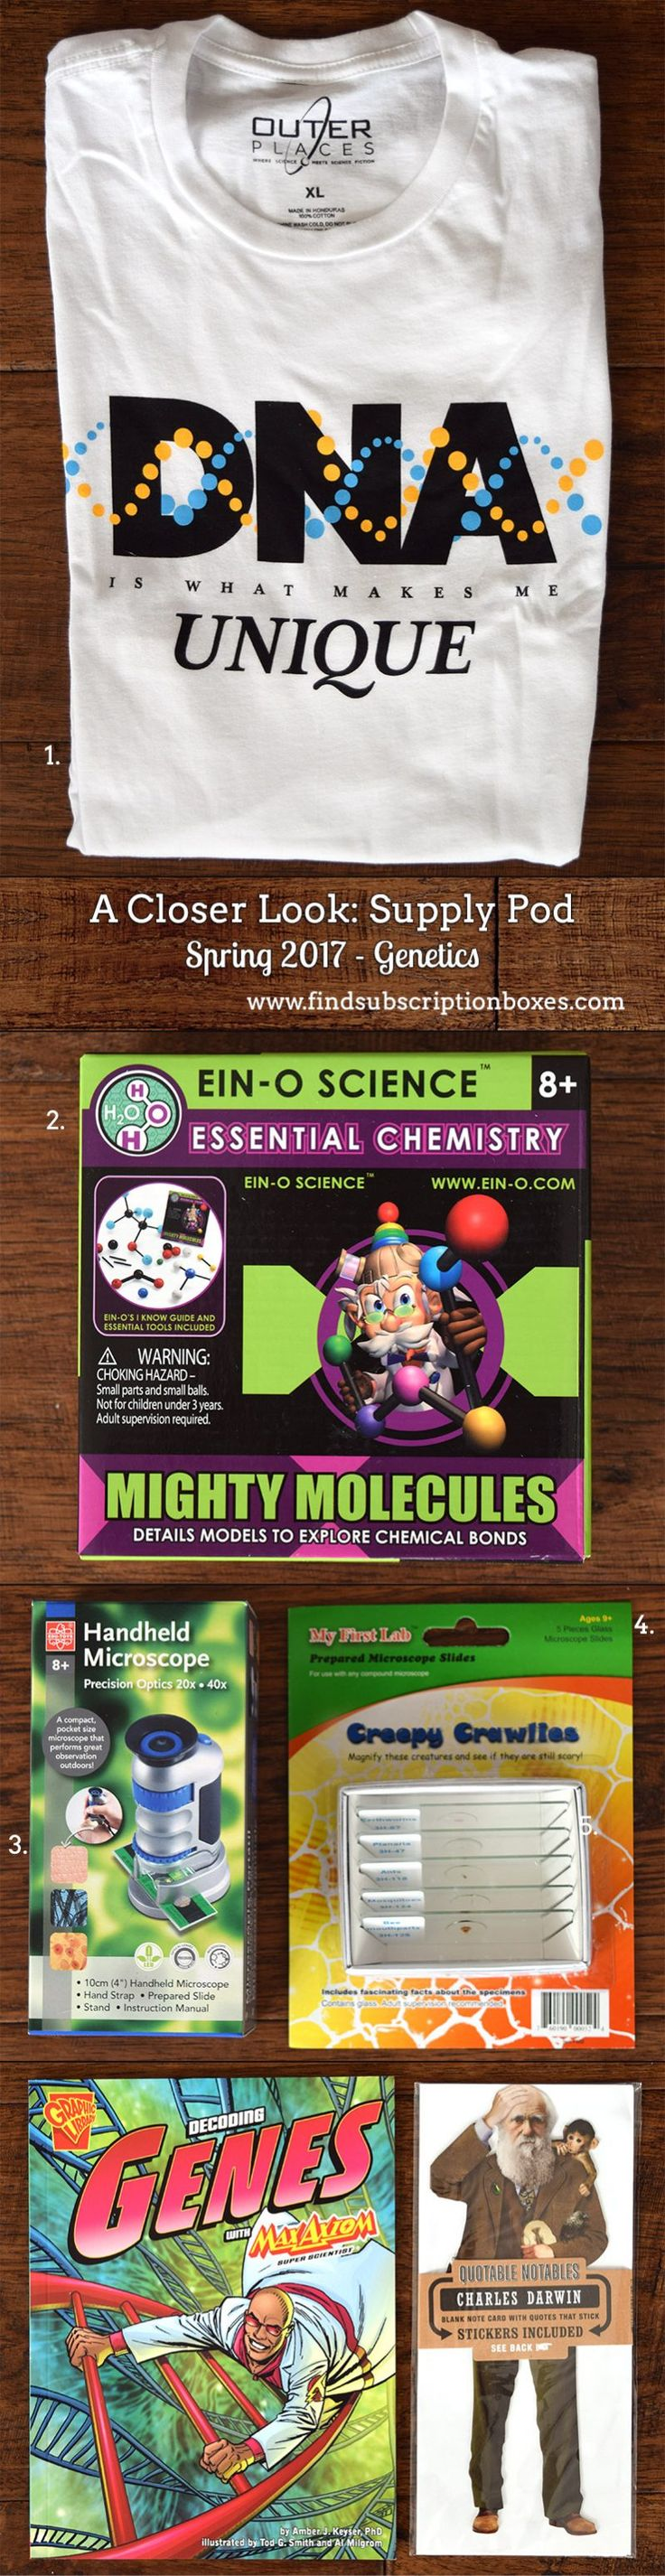 The Spring Genetics Supply Pod by Outer Places unboxed! Handheld Microscope, Ein-o Science Mighty Molecules Kit, Charles Darwin Notables, and more STEM goodies. Check out our review and save 10% off today! http://www.findsubscriptionboxes.com/a-closer-look/spring-2017-supply-pod-review-genetics/?utm_campaign=coschedule&utm_source=pinterest&utm_medium=Find%20Subscription%20Boxes&utm_content=Spring%202017%20Supply%20Pod%20Review%20%E2%80%93%20Genetics%20%2B%20Coupon  #SupplyPod